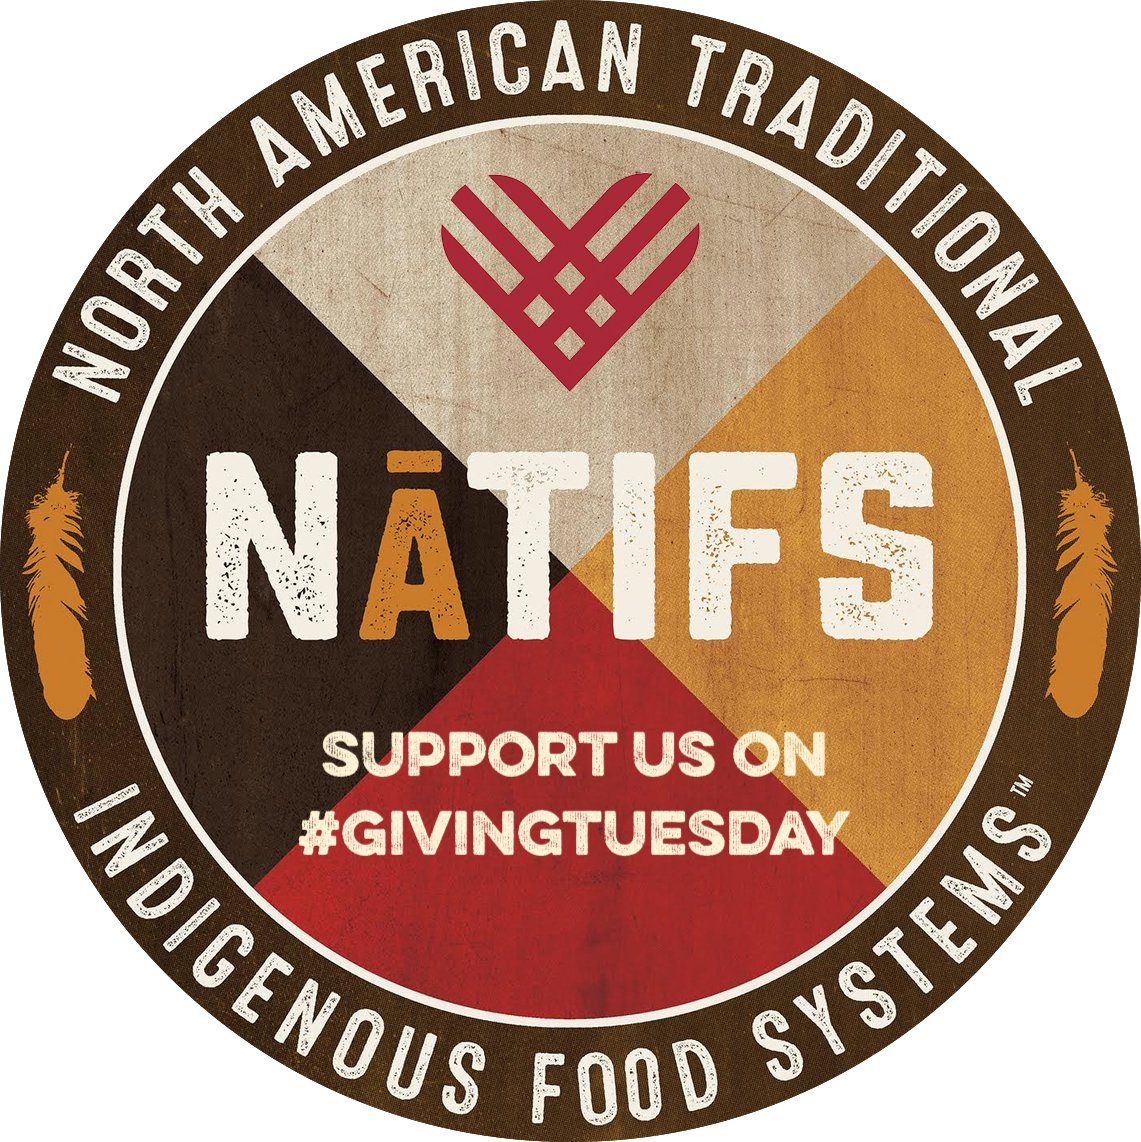 Support Indigenous Food Lab today to launch the nonprofit restaurant & training center. Gifts are matched on #GivingTuesday bit.ly/2KPFL6f @natifs_org @indi_food_lab @GivingTuesday #givingtuesday